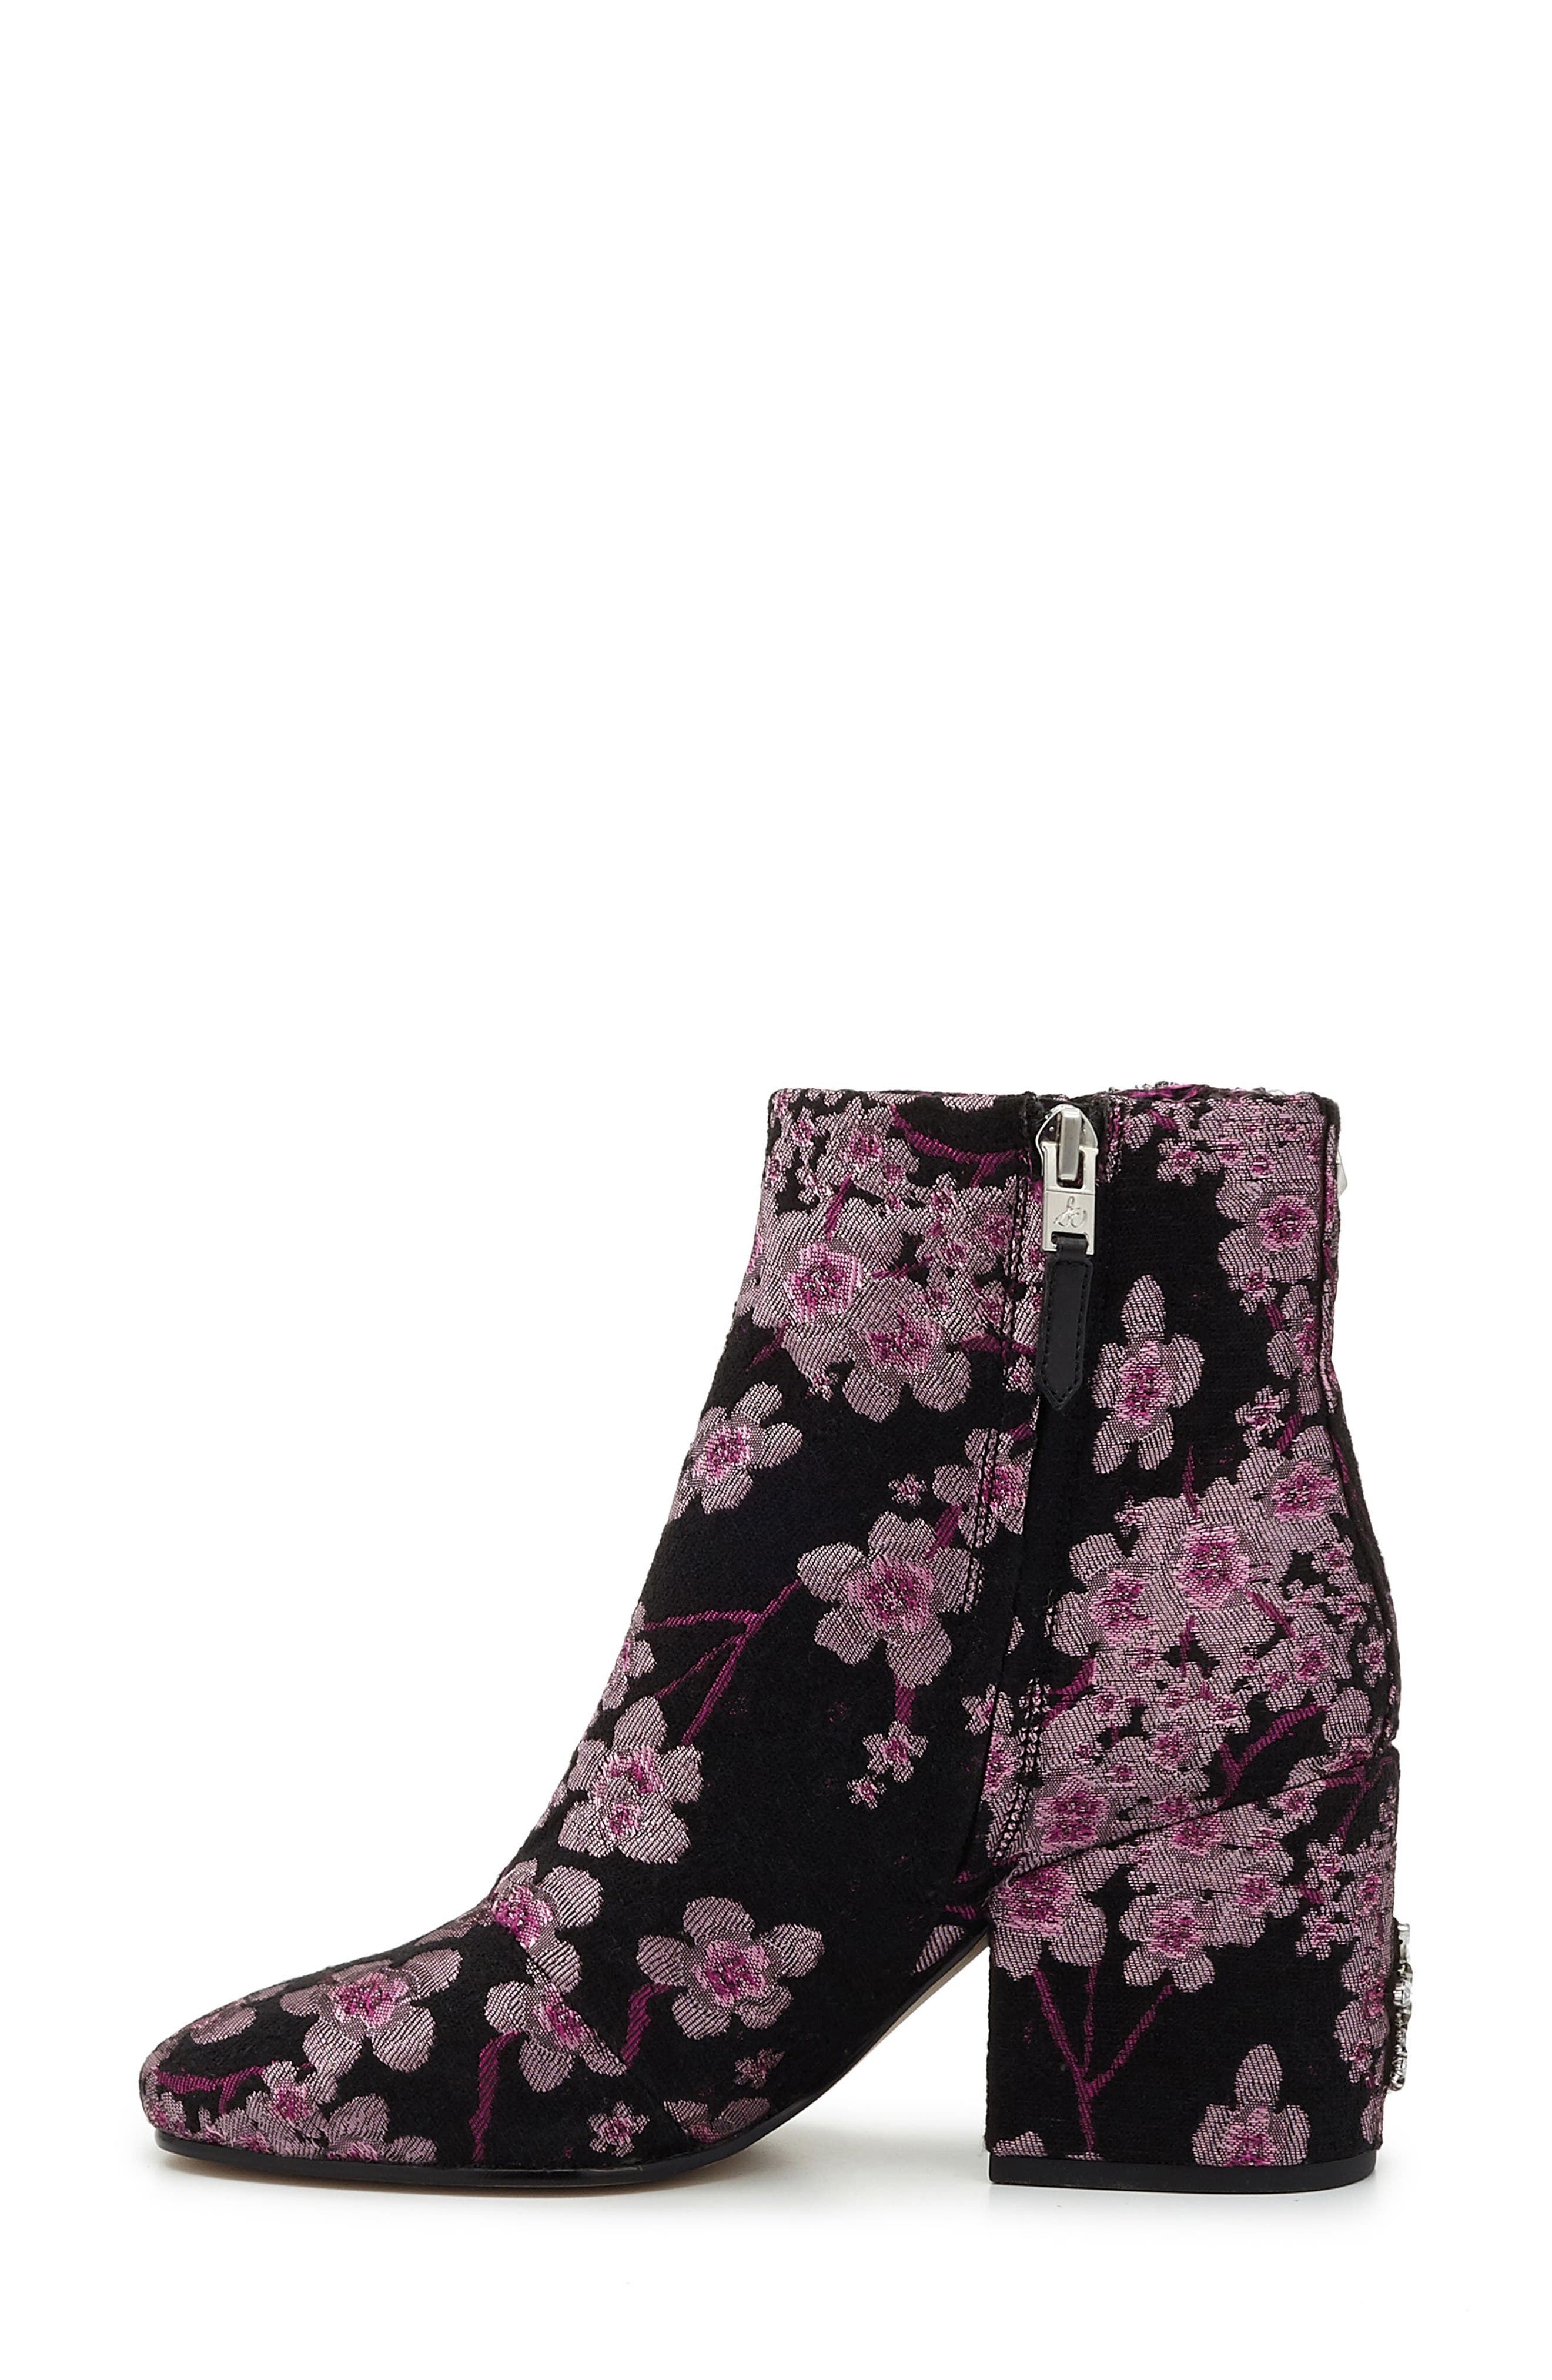 'Taye' Bootie,                             Alternate thumbnail 5, color,                             Pink Multi Brocade